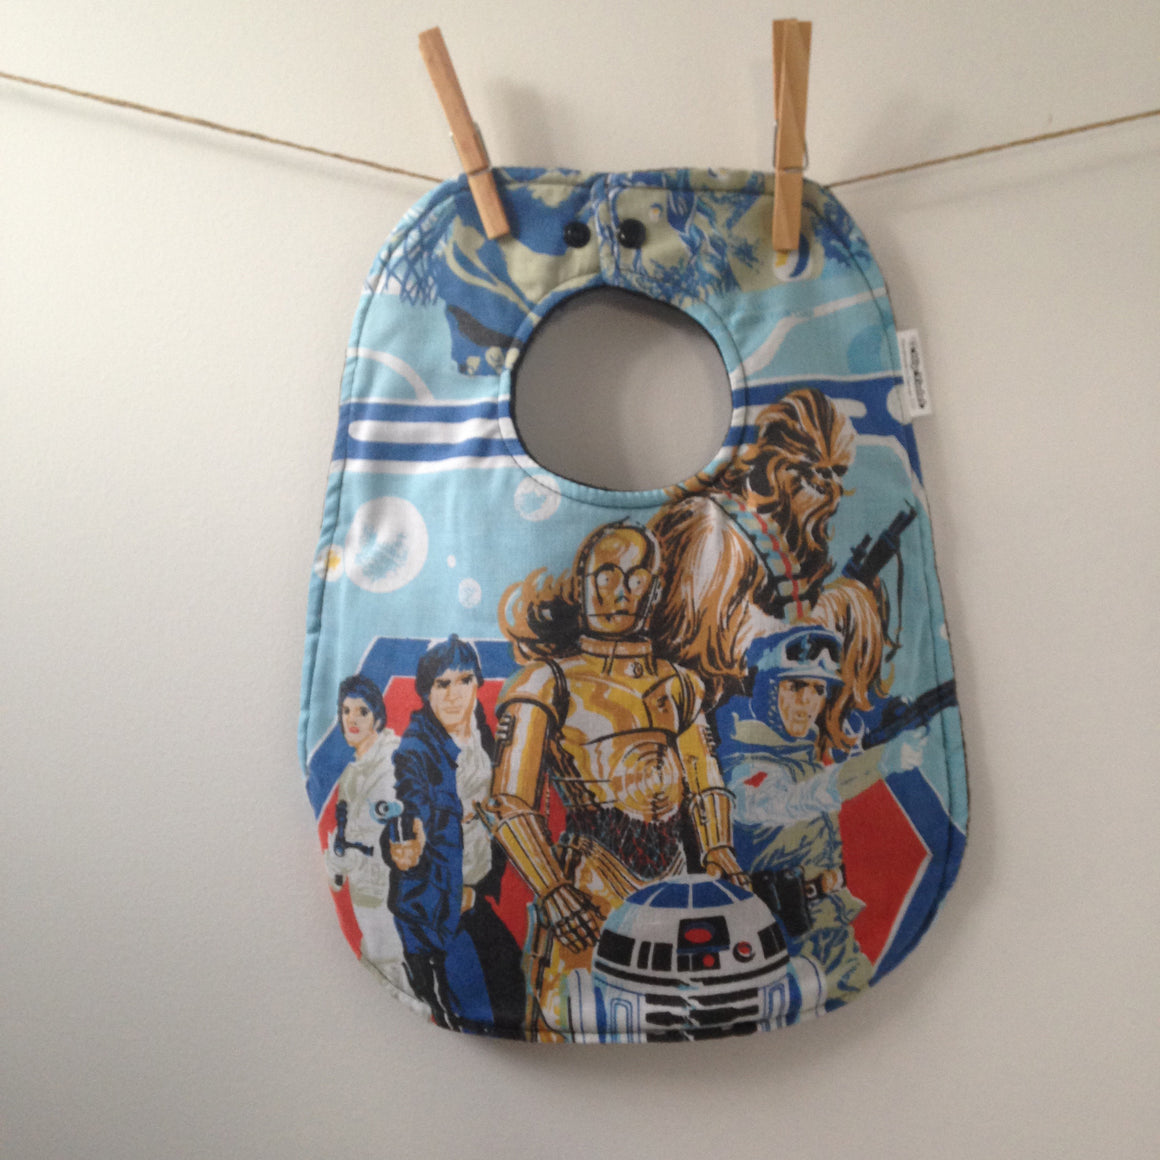 return of the jedi baby gift